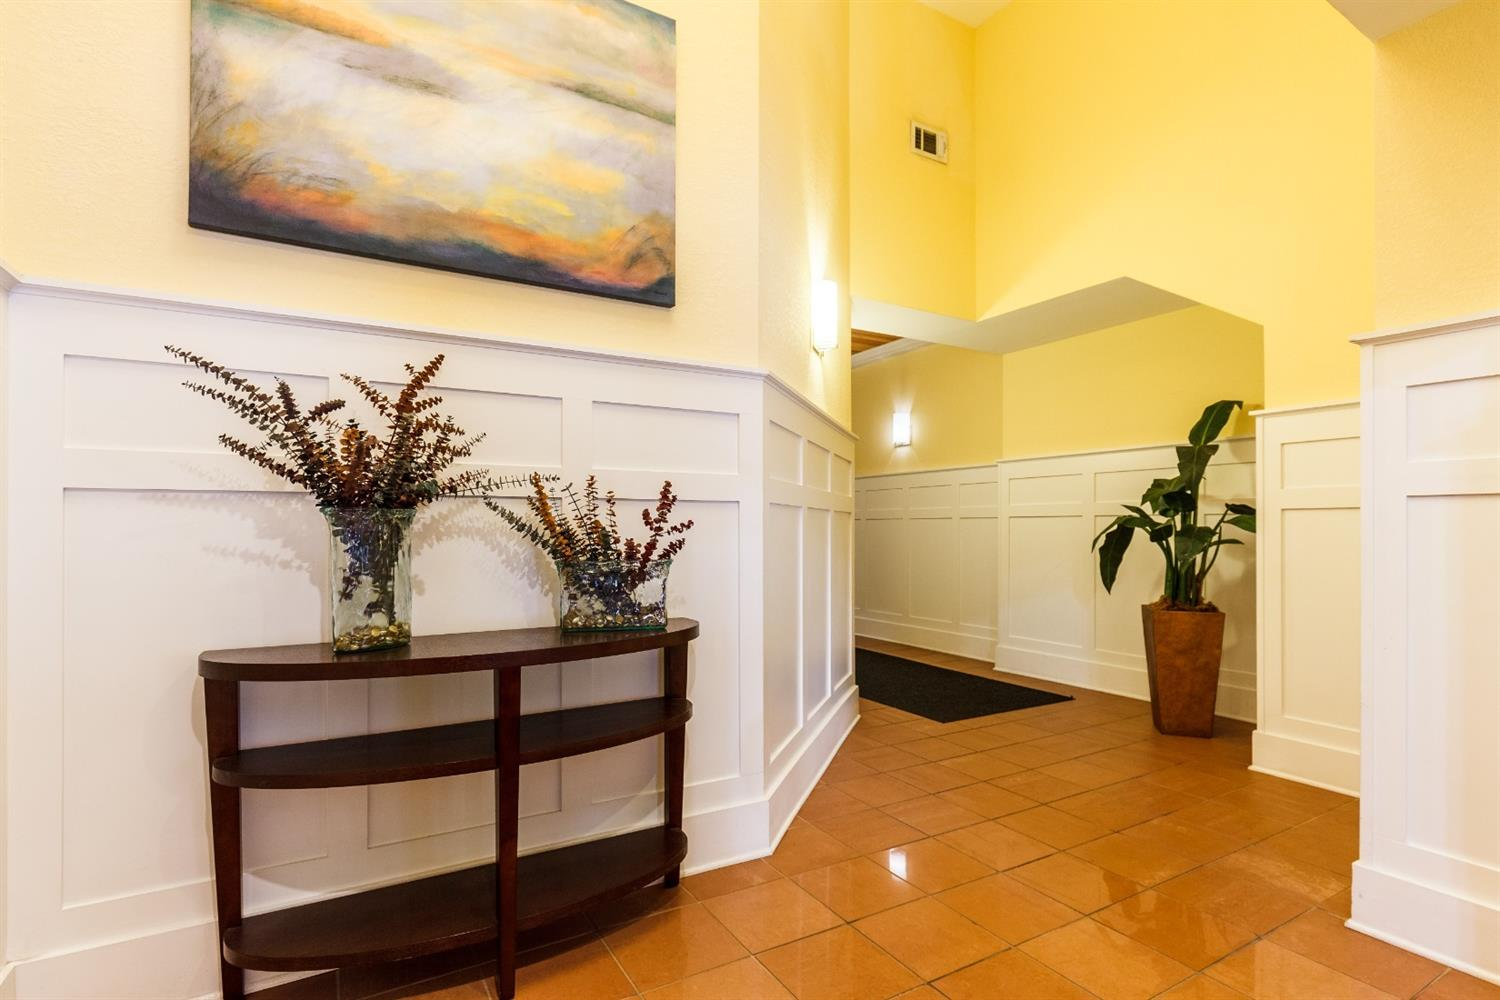 Inner lobby to elevator. This well kept property has a strong association. Secured entry system with cameras and out lobby doors lock at 6. Water/sewer, wifi/internet are included in the condo fee.